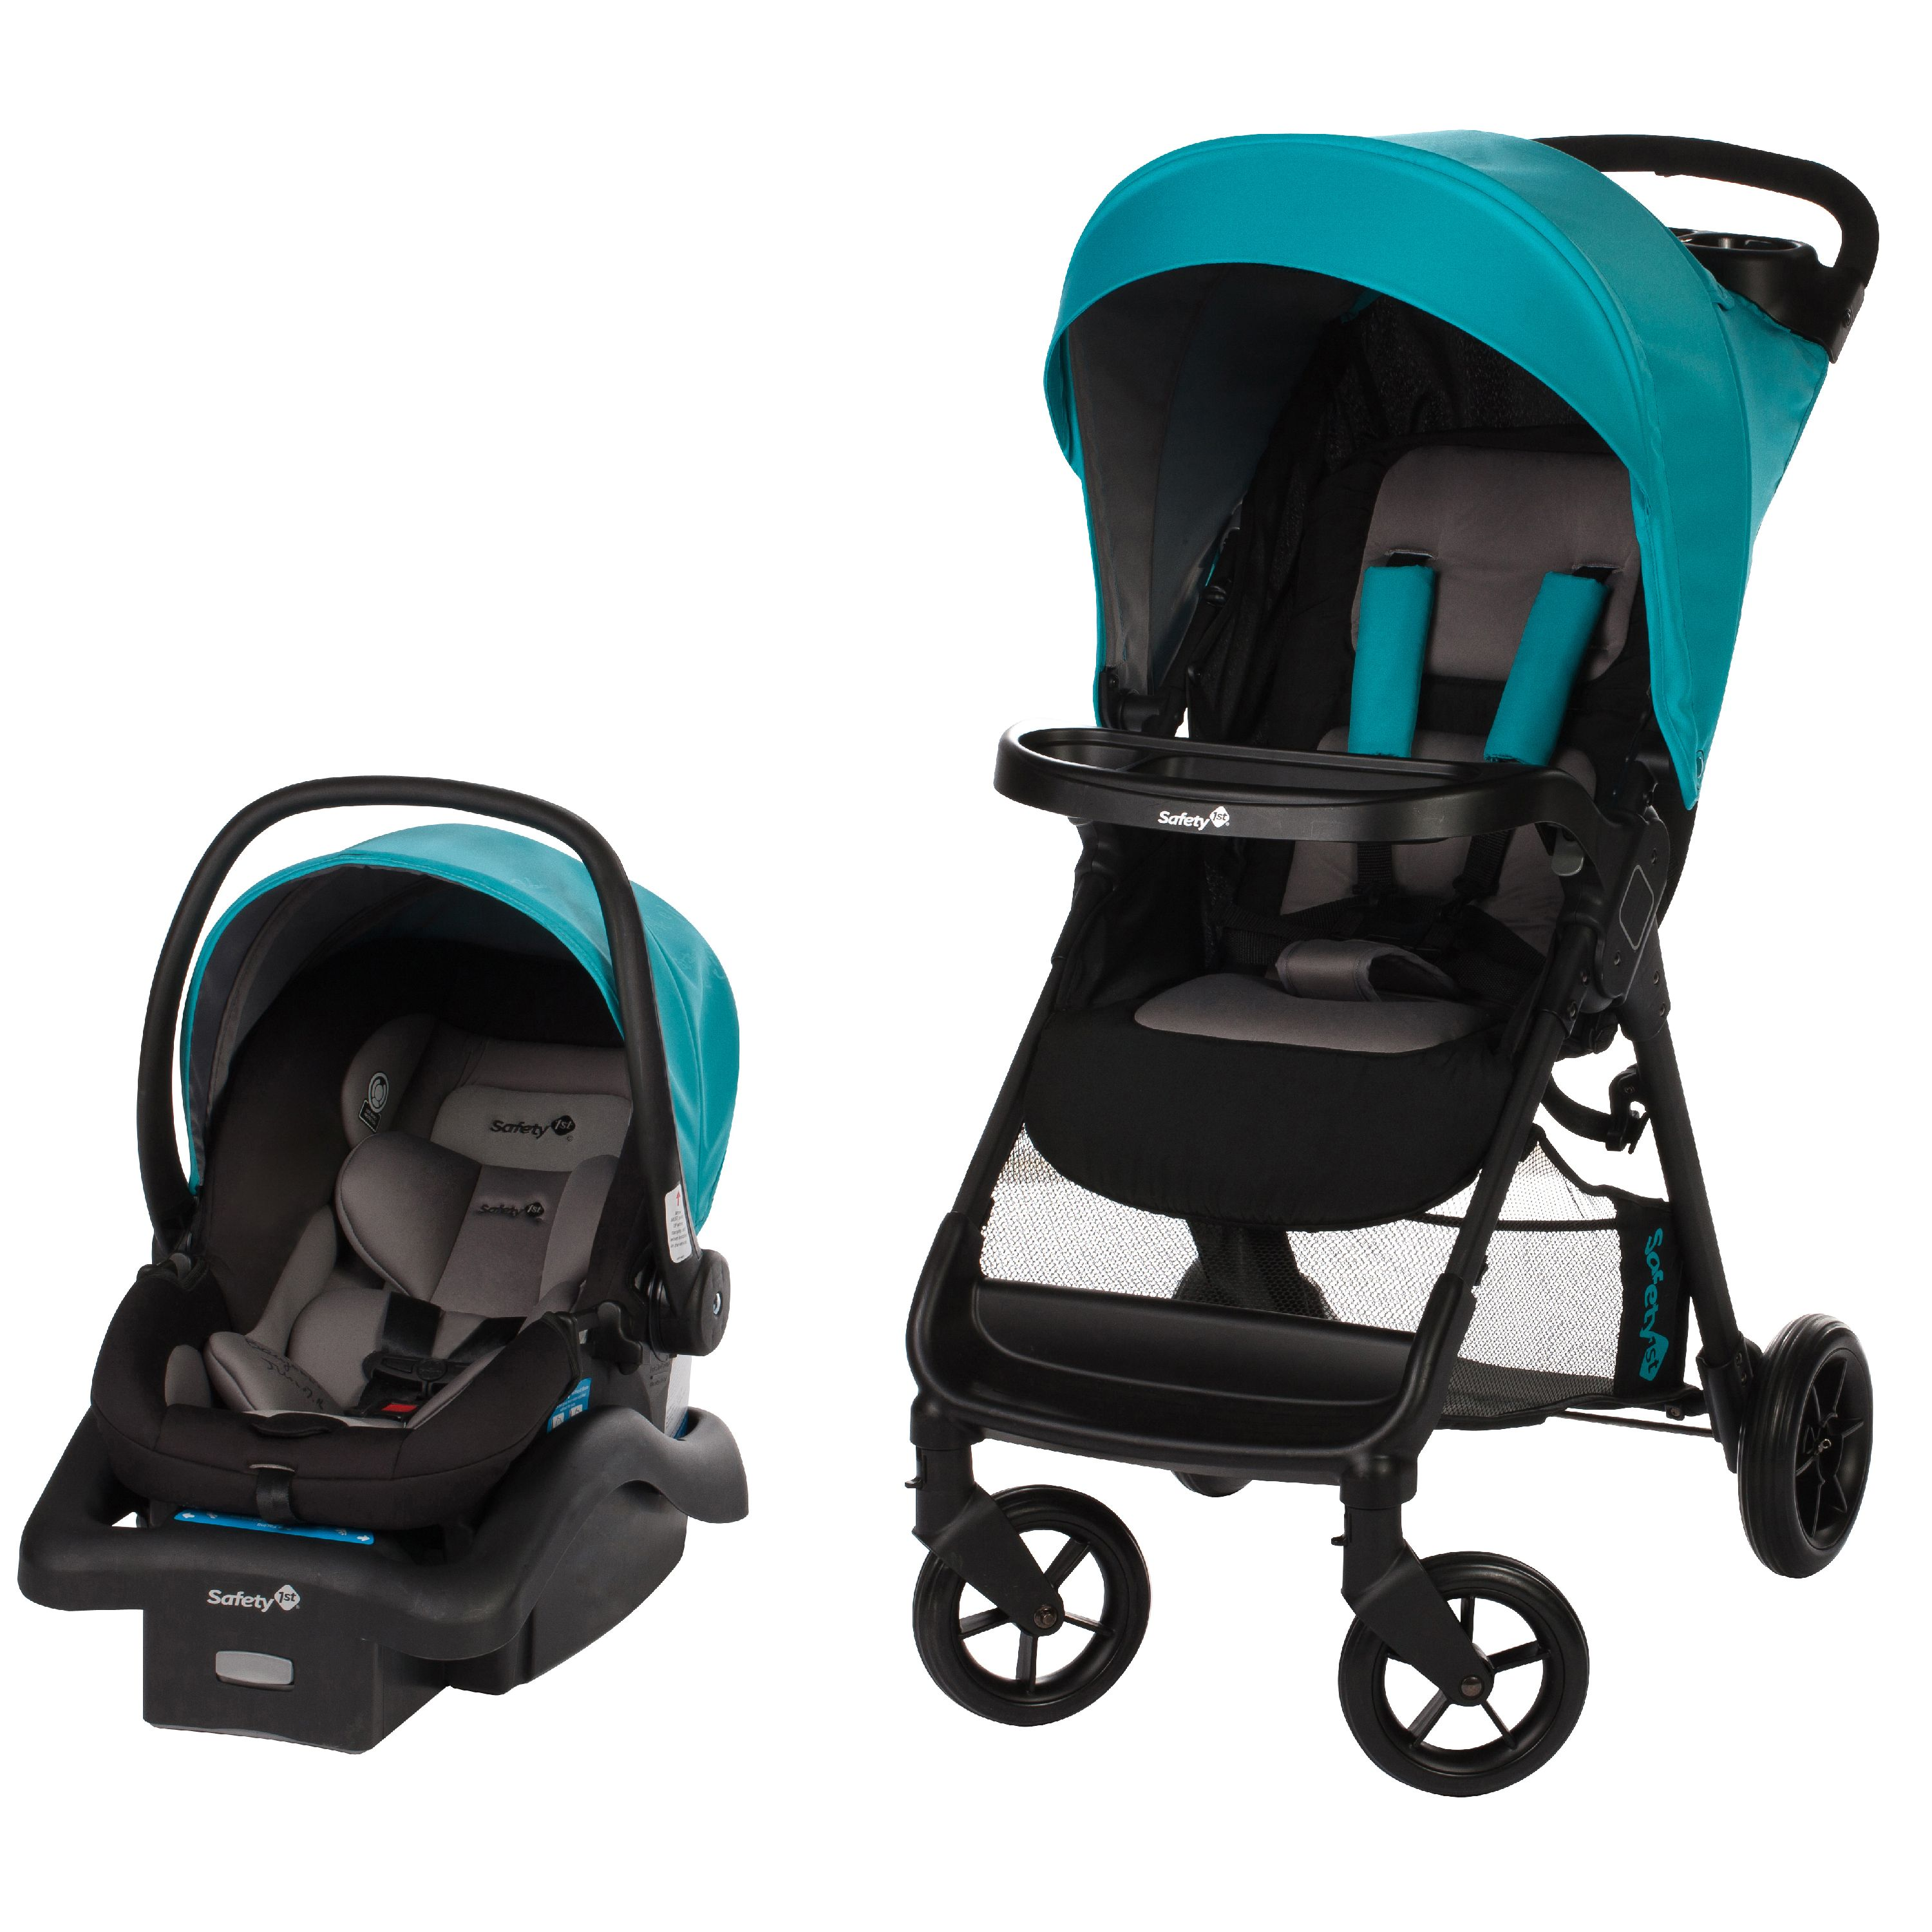 Safety 1�ᵗ Smooth Ride Travel System, Monument by Safety 1st